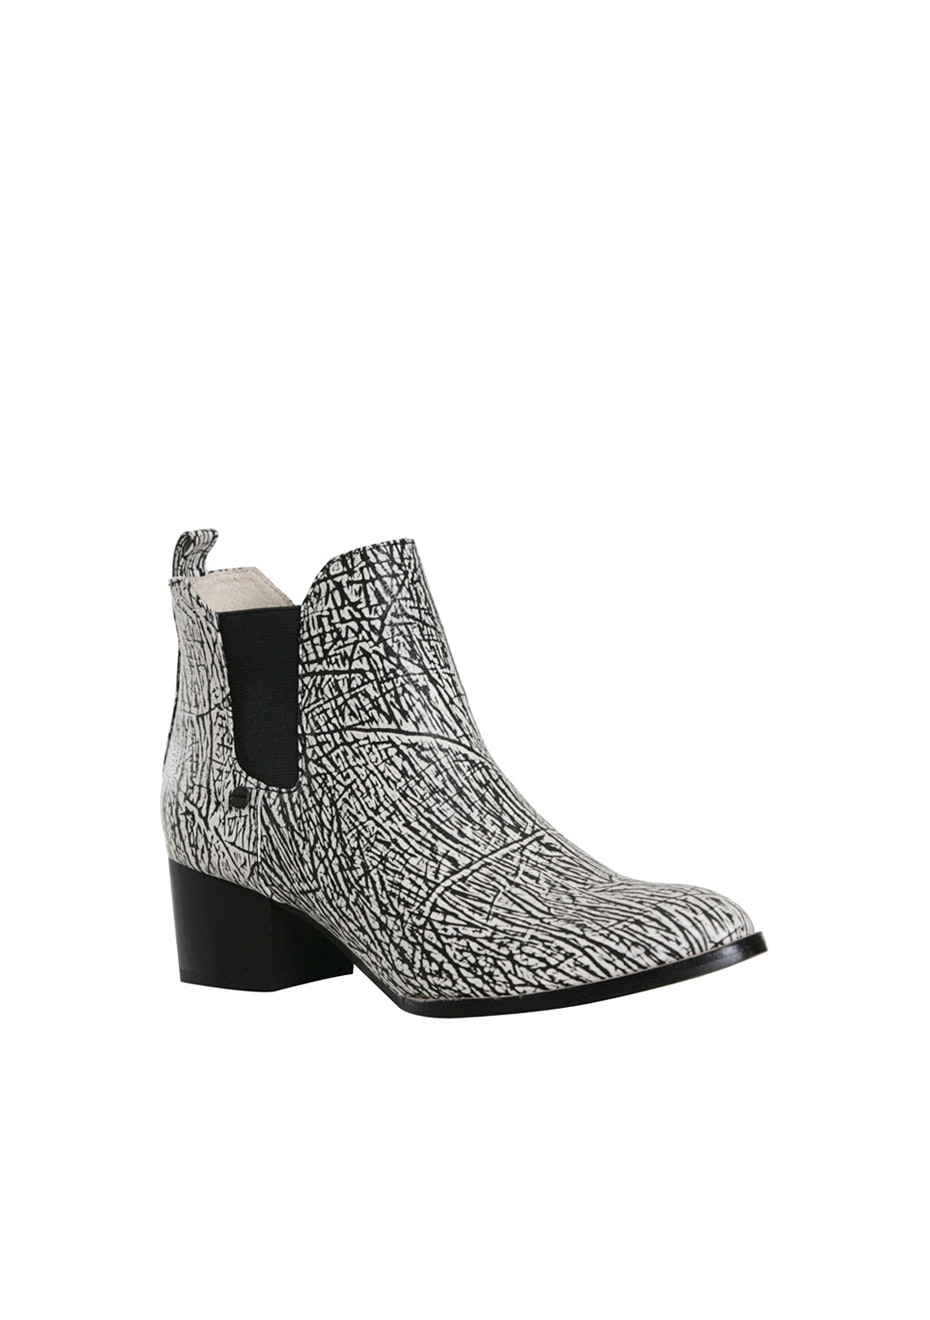 Chaos & Harmony Siege Ankle Chelsea Boot - Black/White